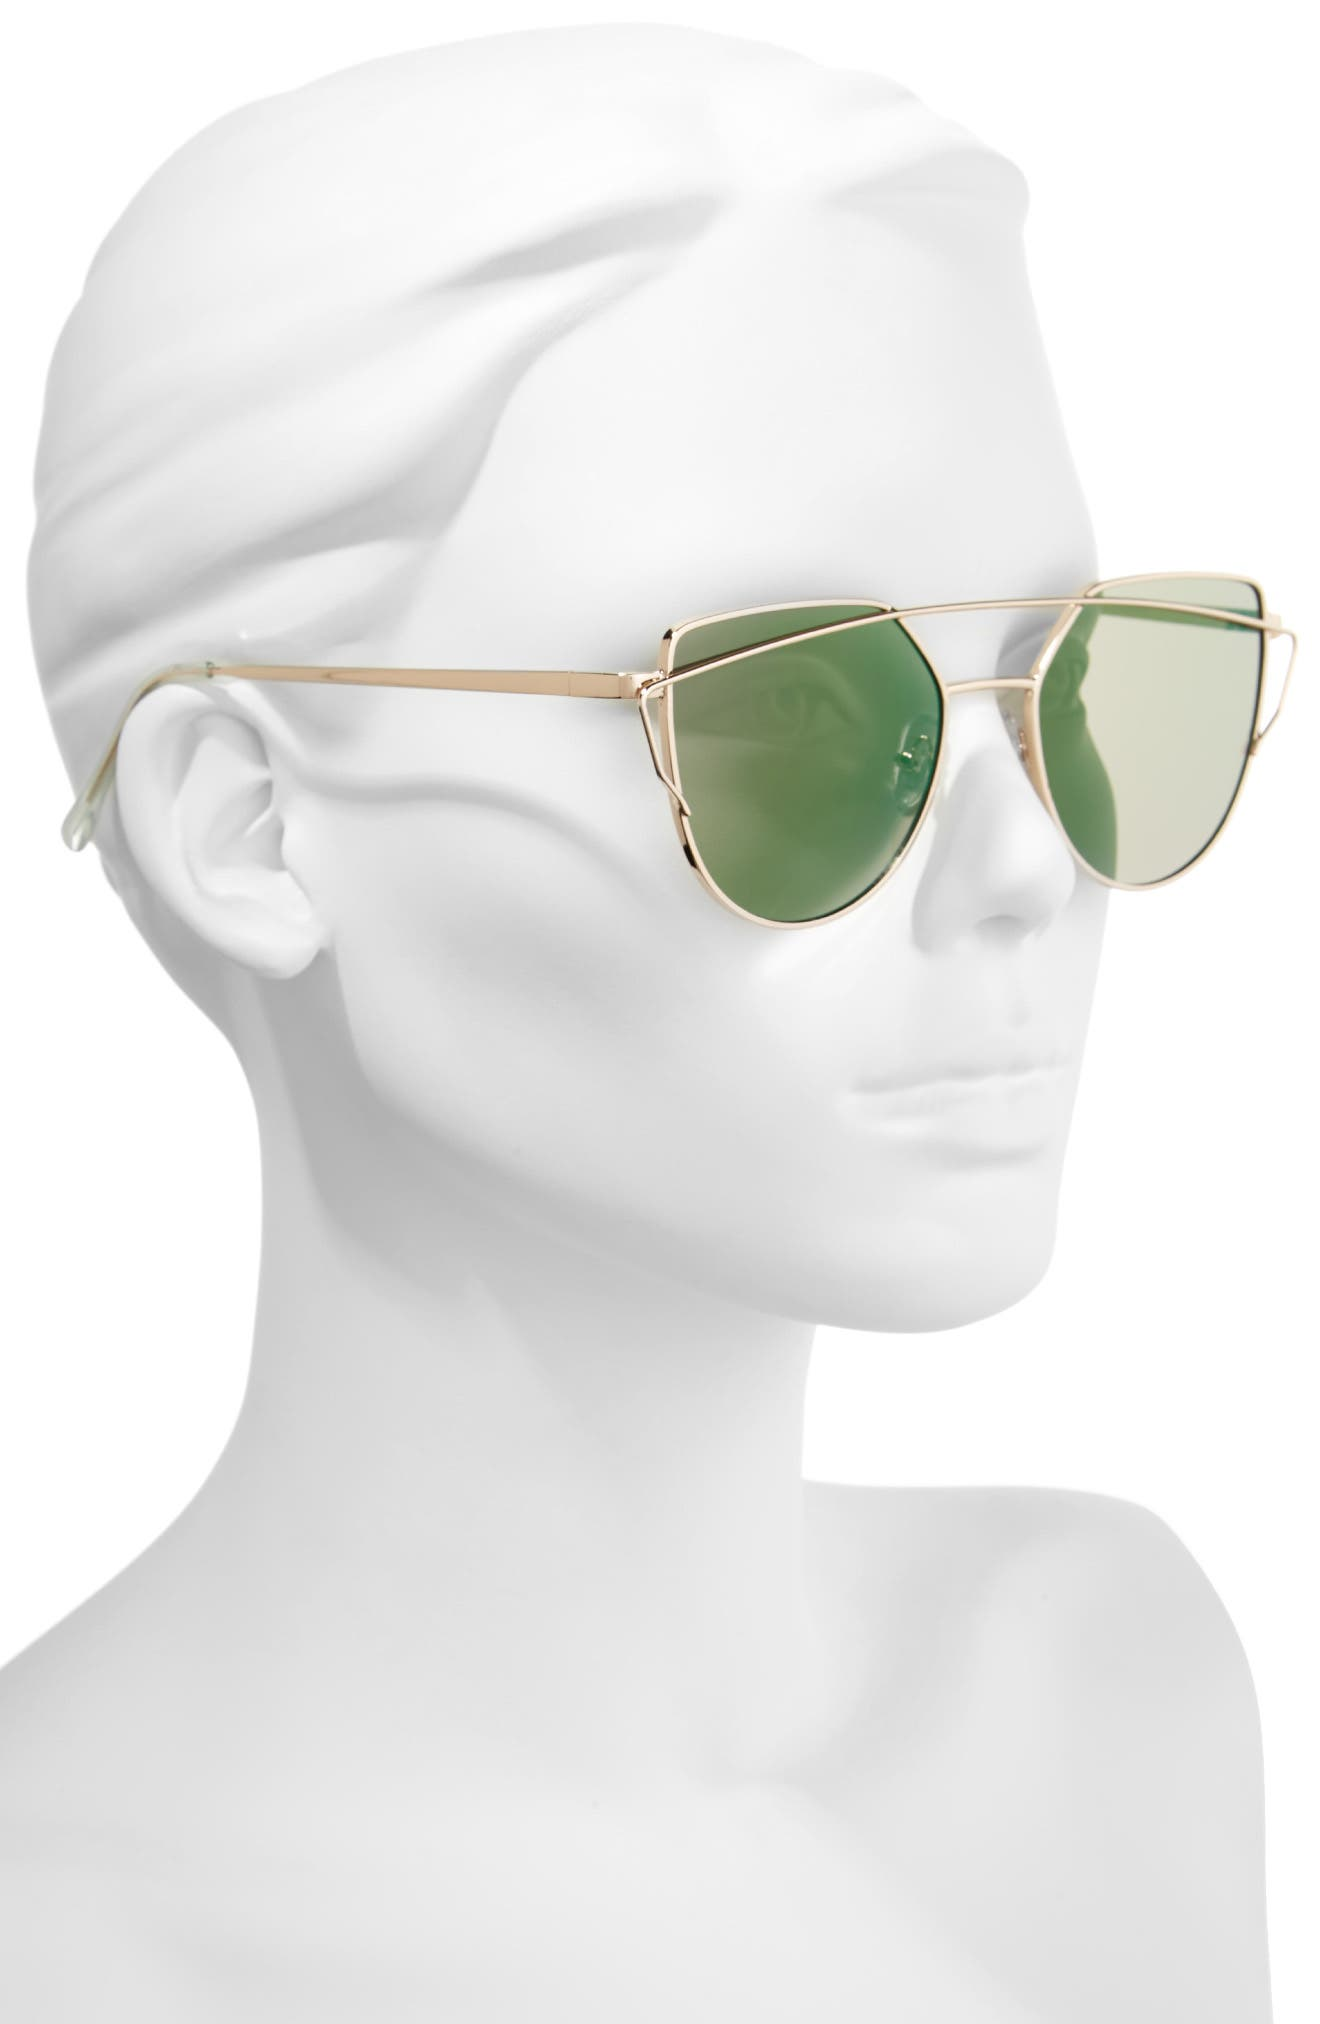 51mm Thin Brow Angular Aviator Sunglasses,                             Alternate thumbnail 16, color,